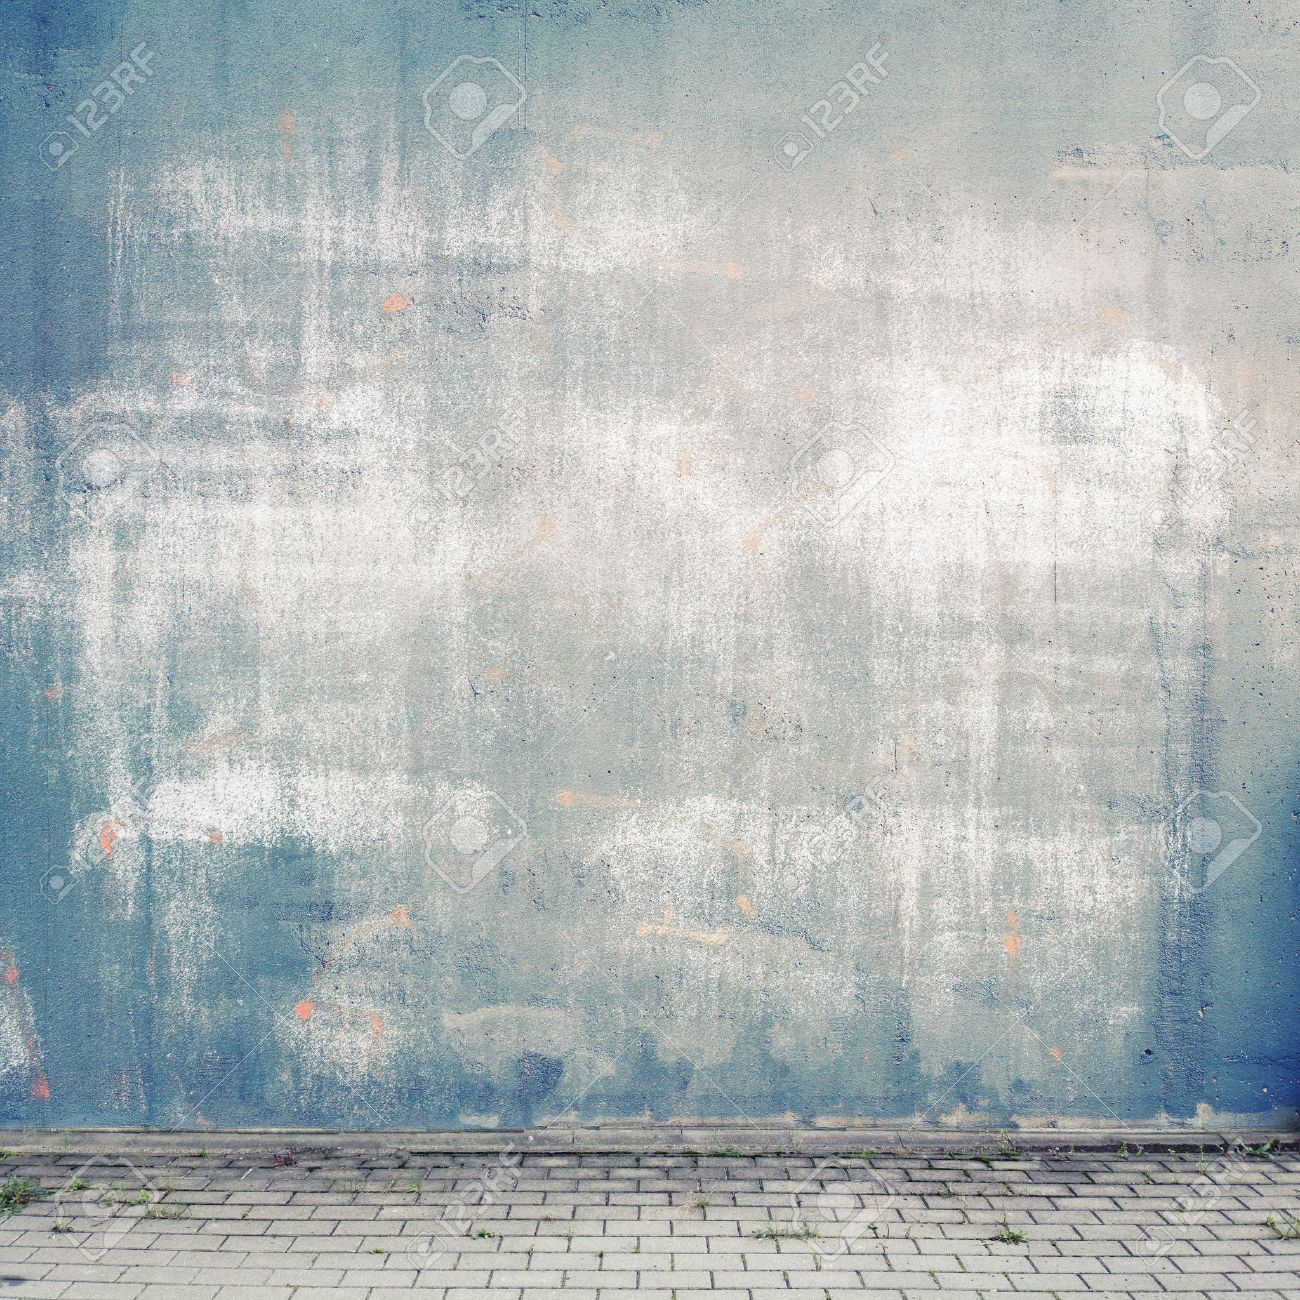 Urban background. Grunge obsolete street wall and pavement. Stock Photo - 44384506